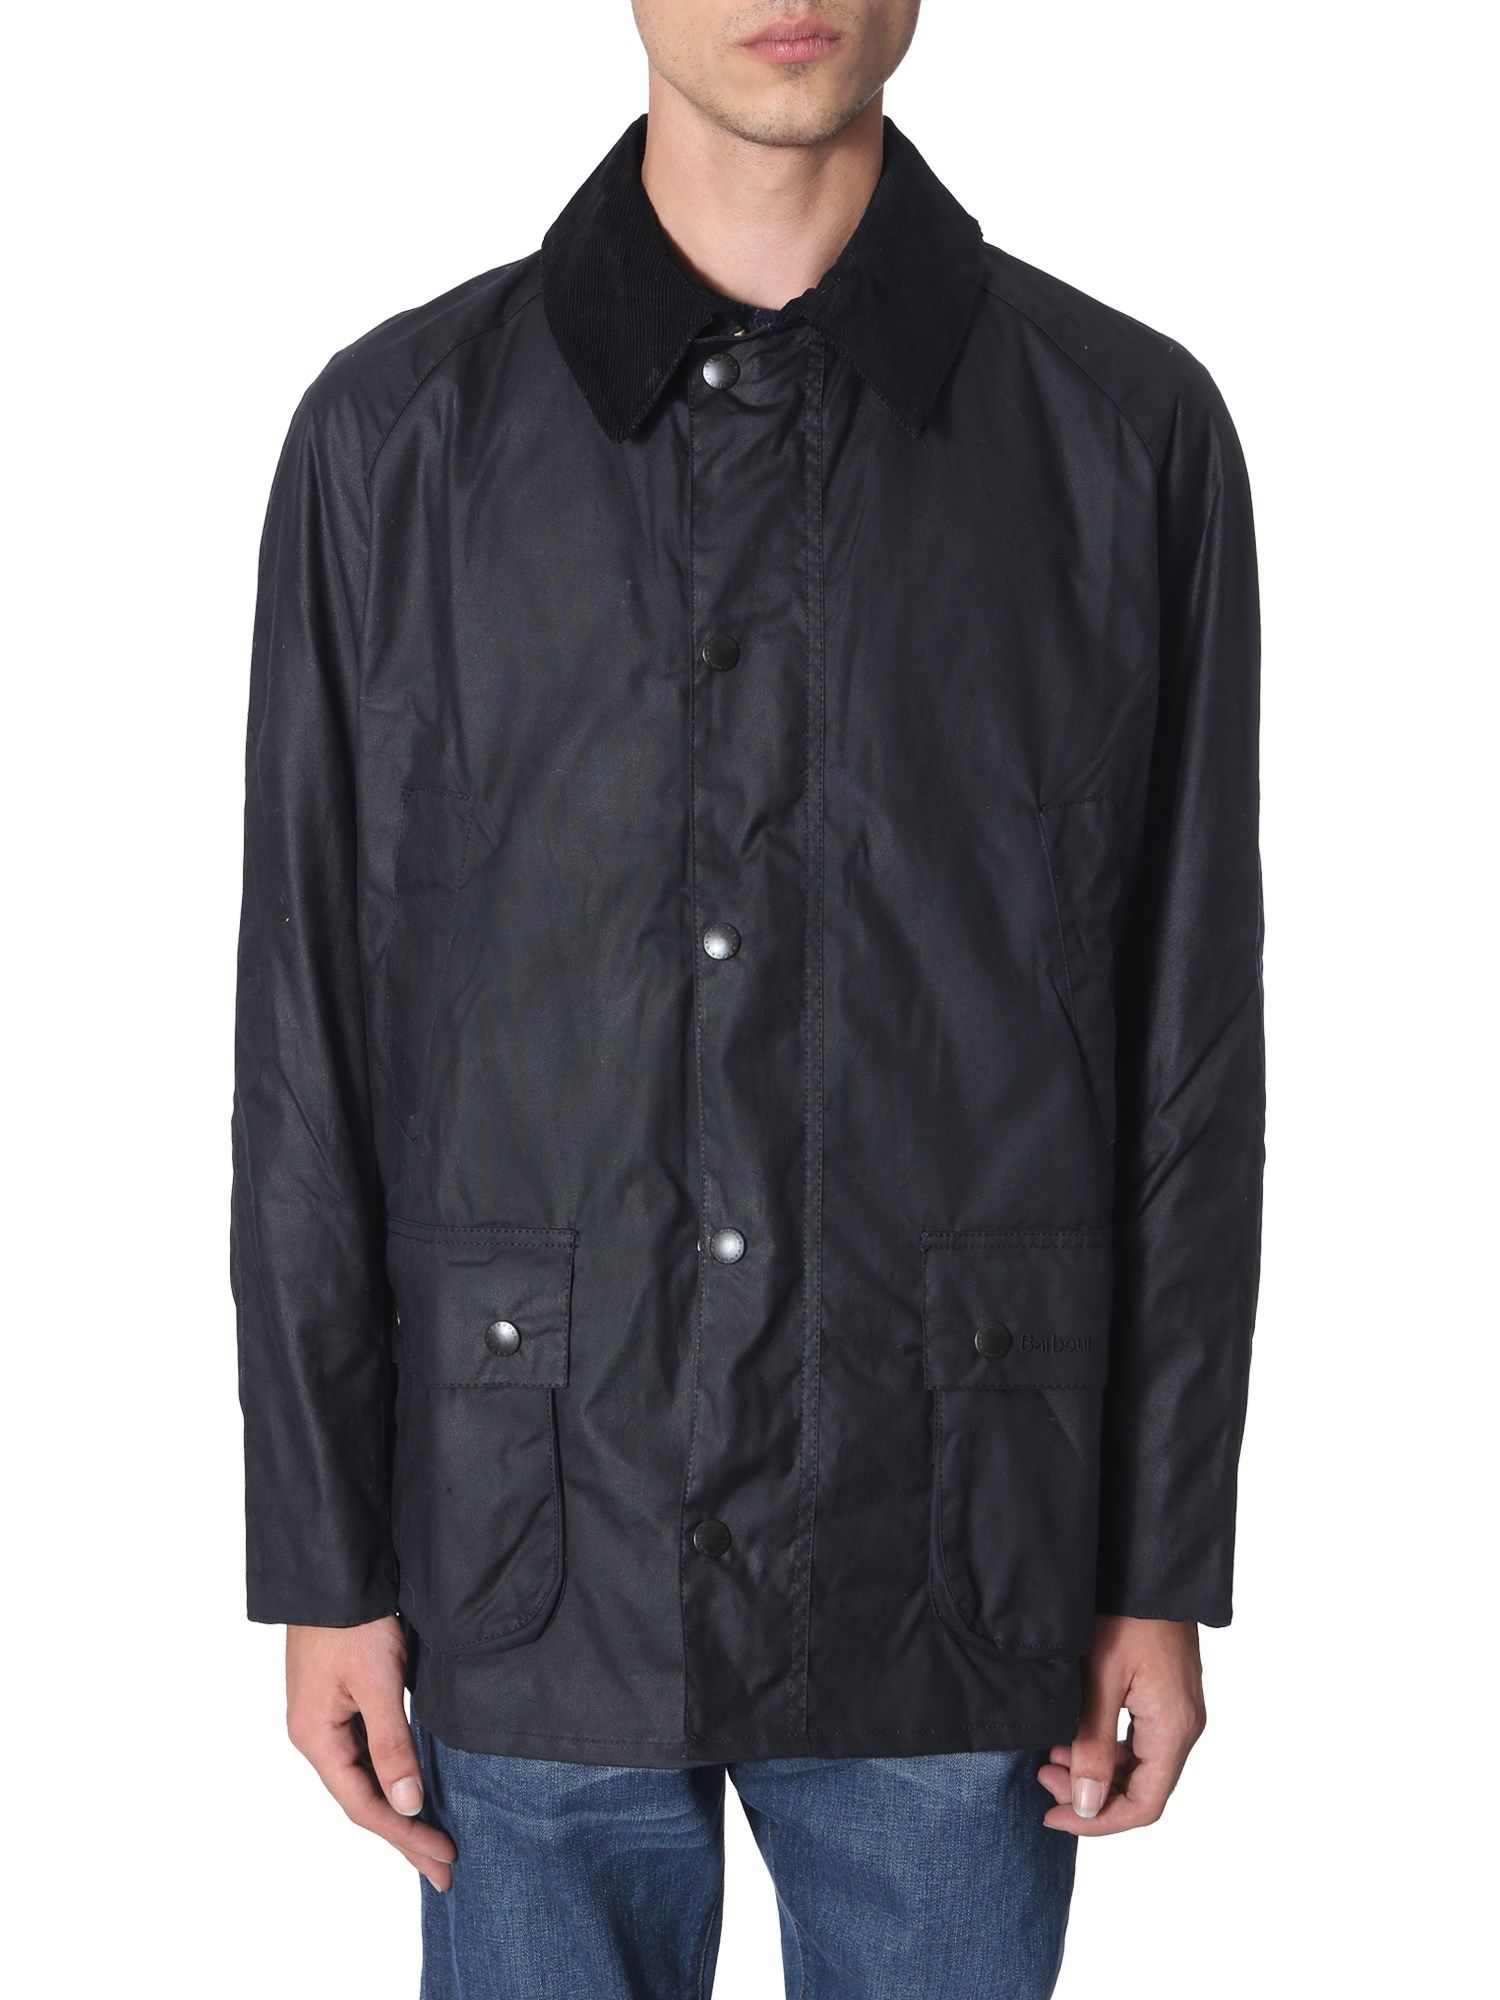 timeless design 8e529 ddf95 BARBOUR GIACCA